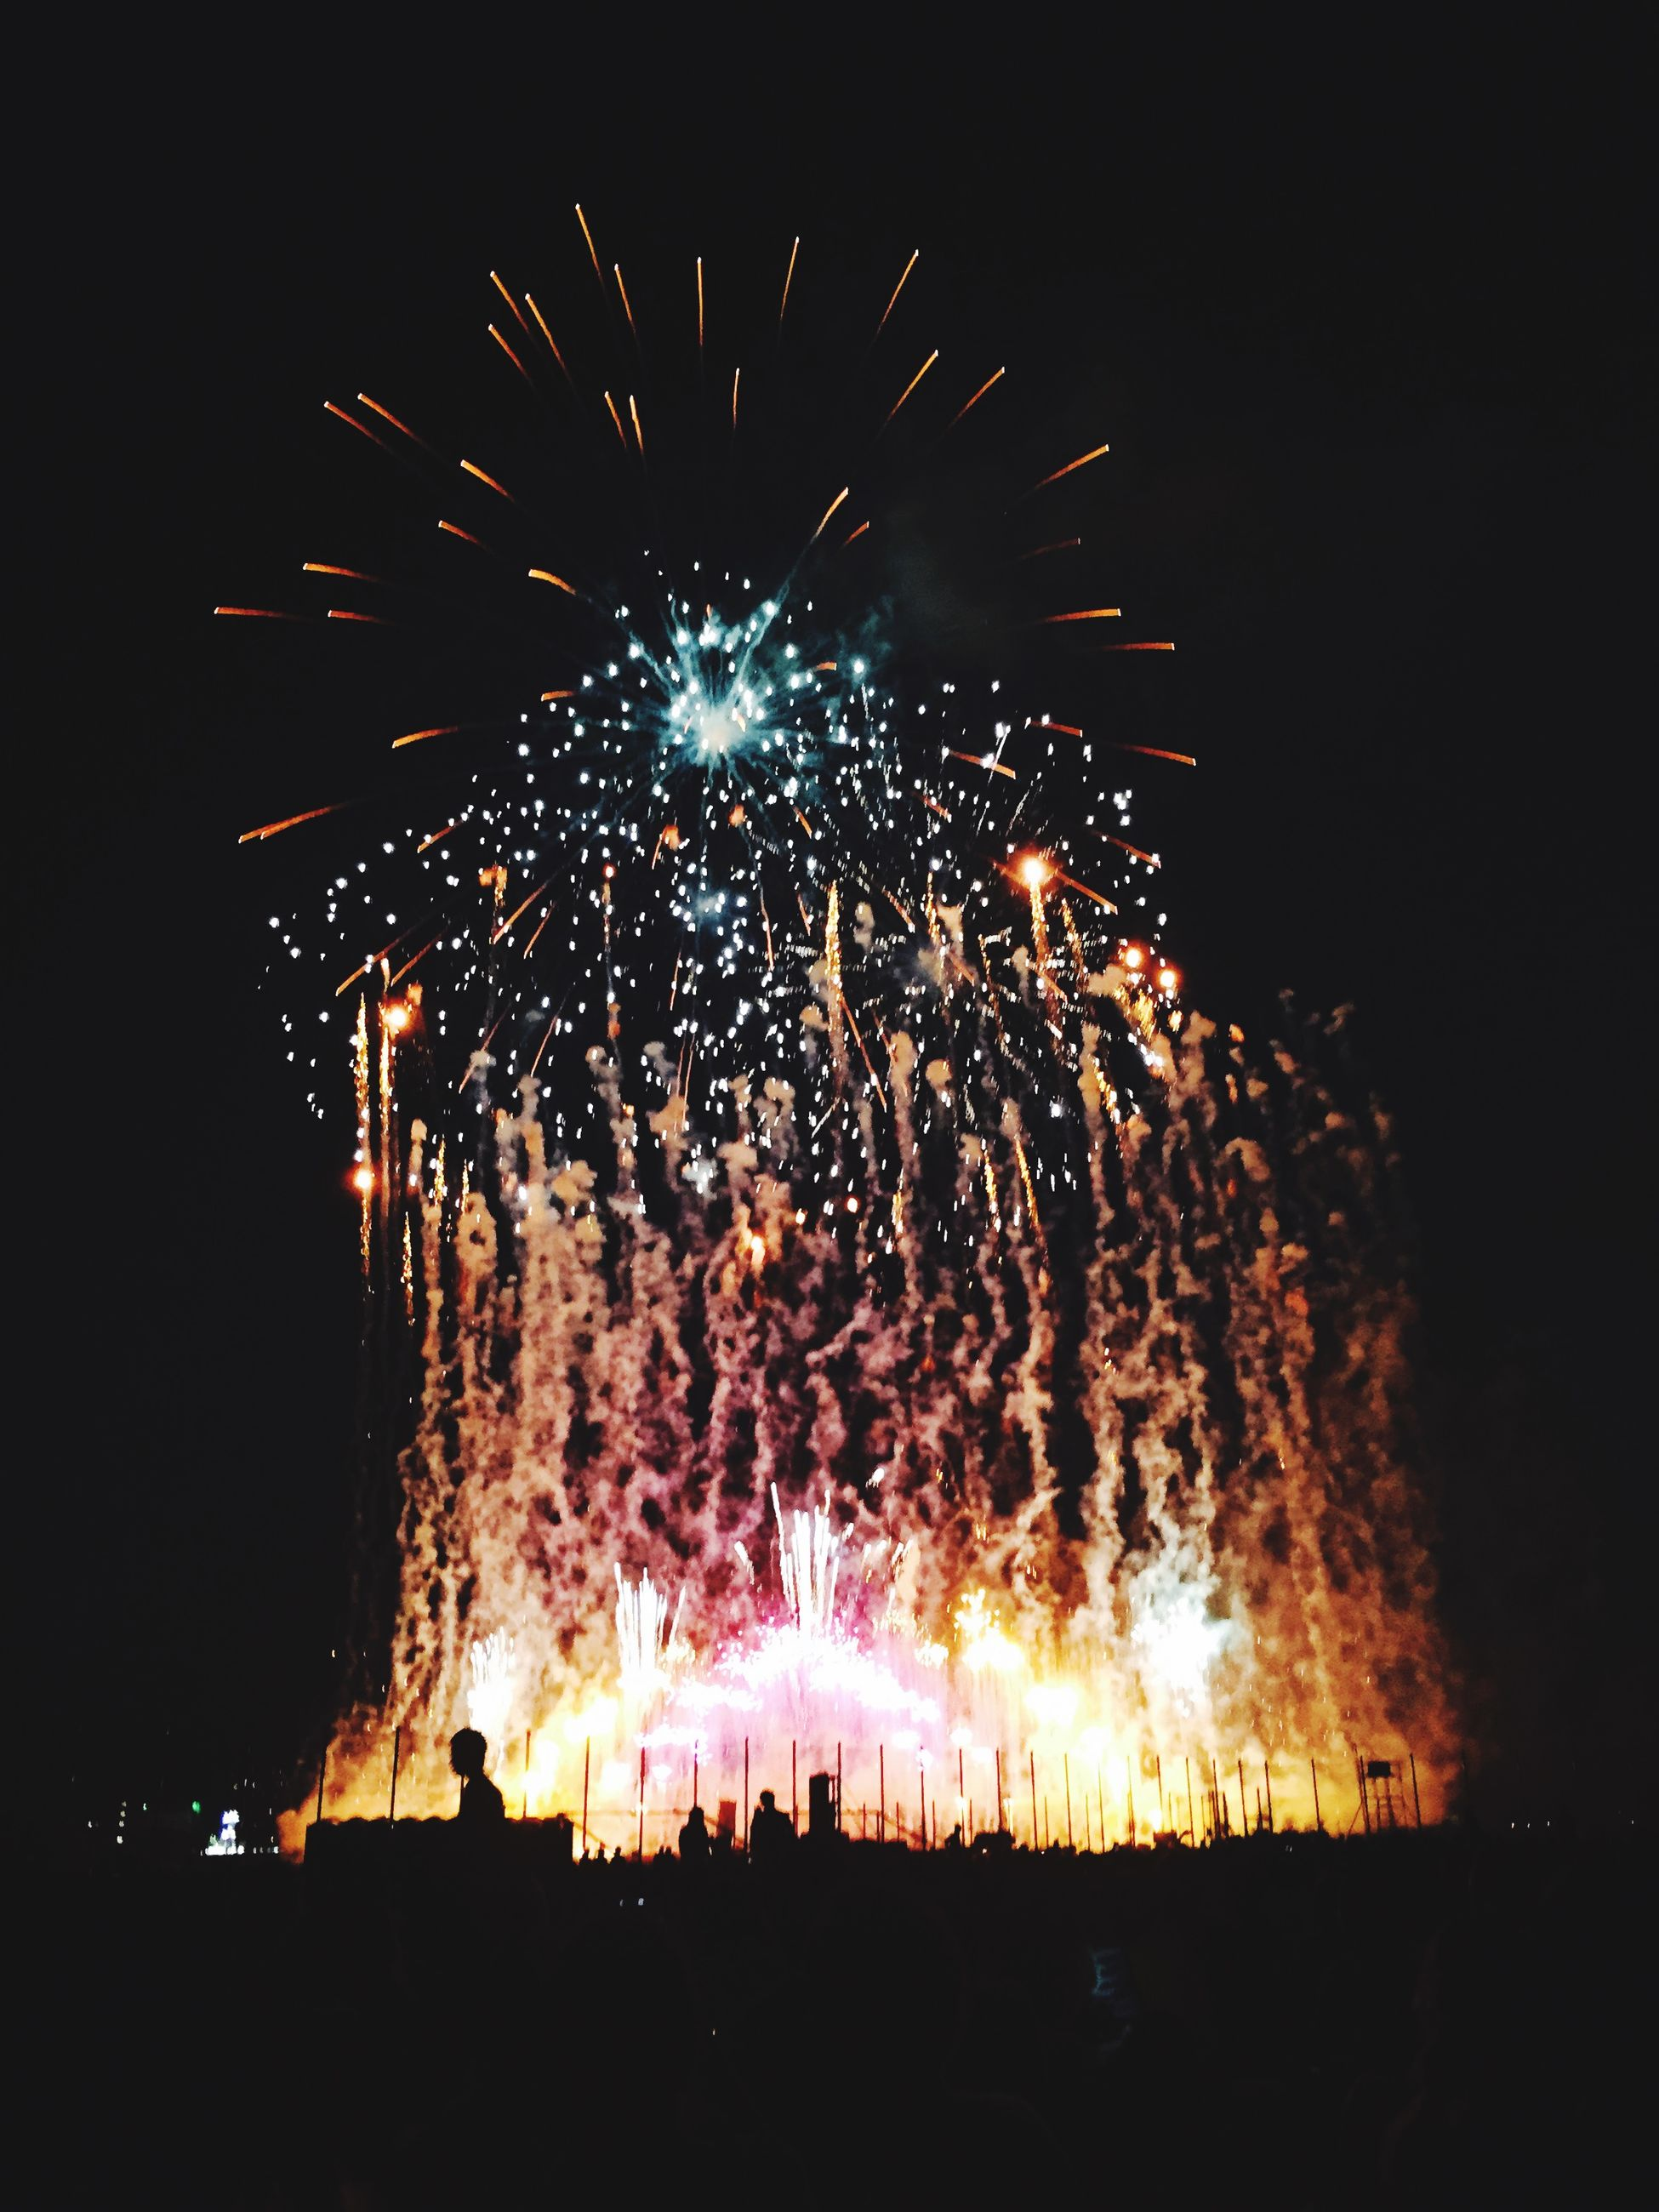 night, firework display, illuminated, exploding, long exposure, celebration, arts culture and entertainment, firework - man made object, motion, sparks, event, glowing, blurred motion, entertainment, firework, fire - natural phenomenon, sky, celebration event, smoke - physical structure, low angle view